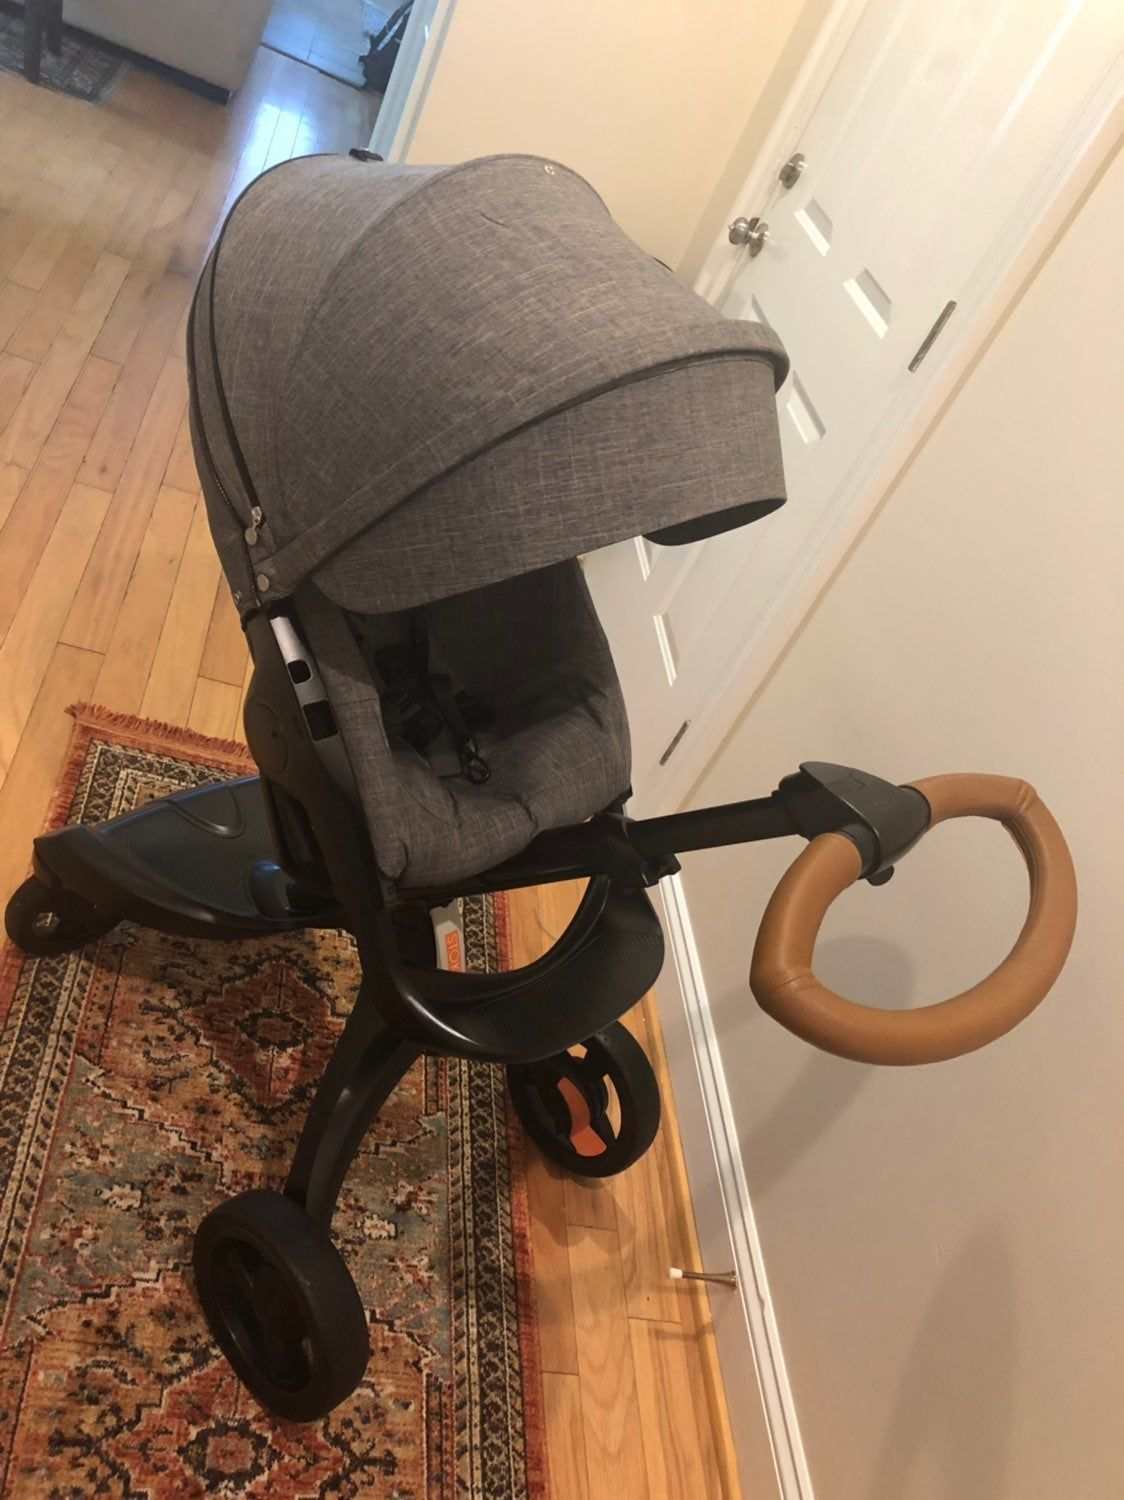 Pin on Stokke Travel systems